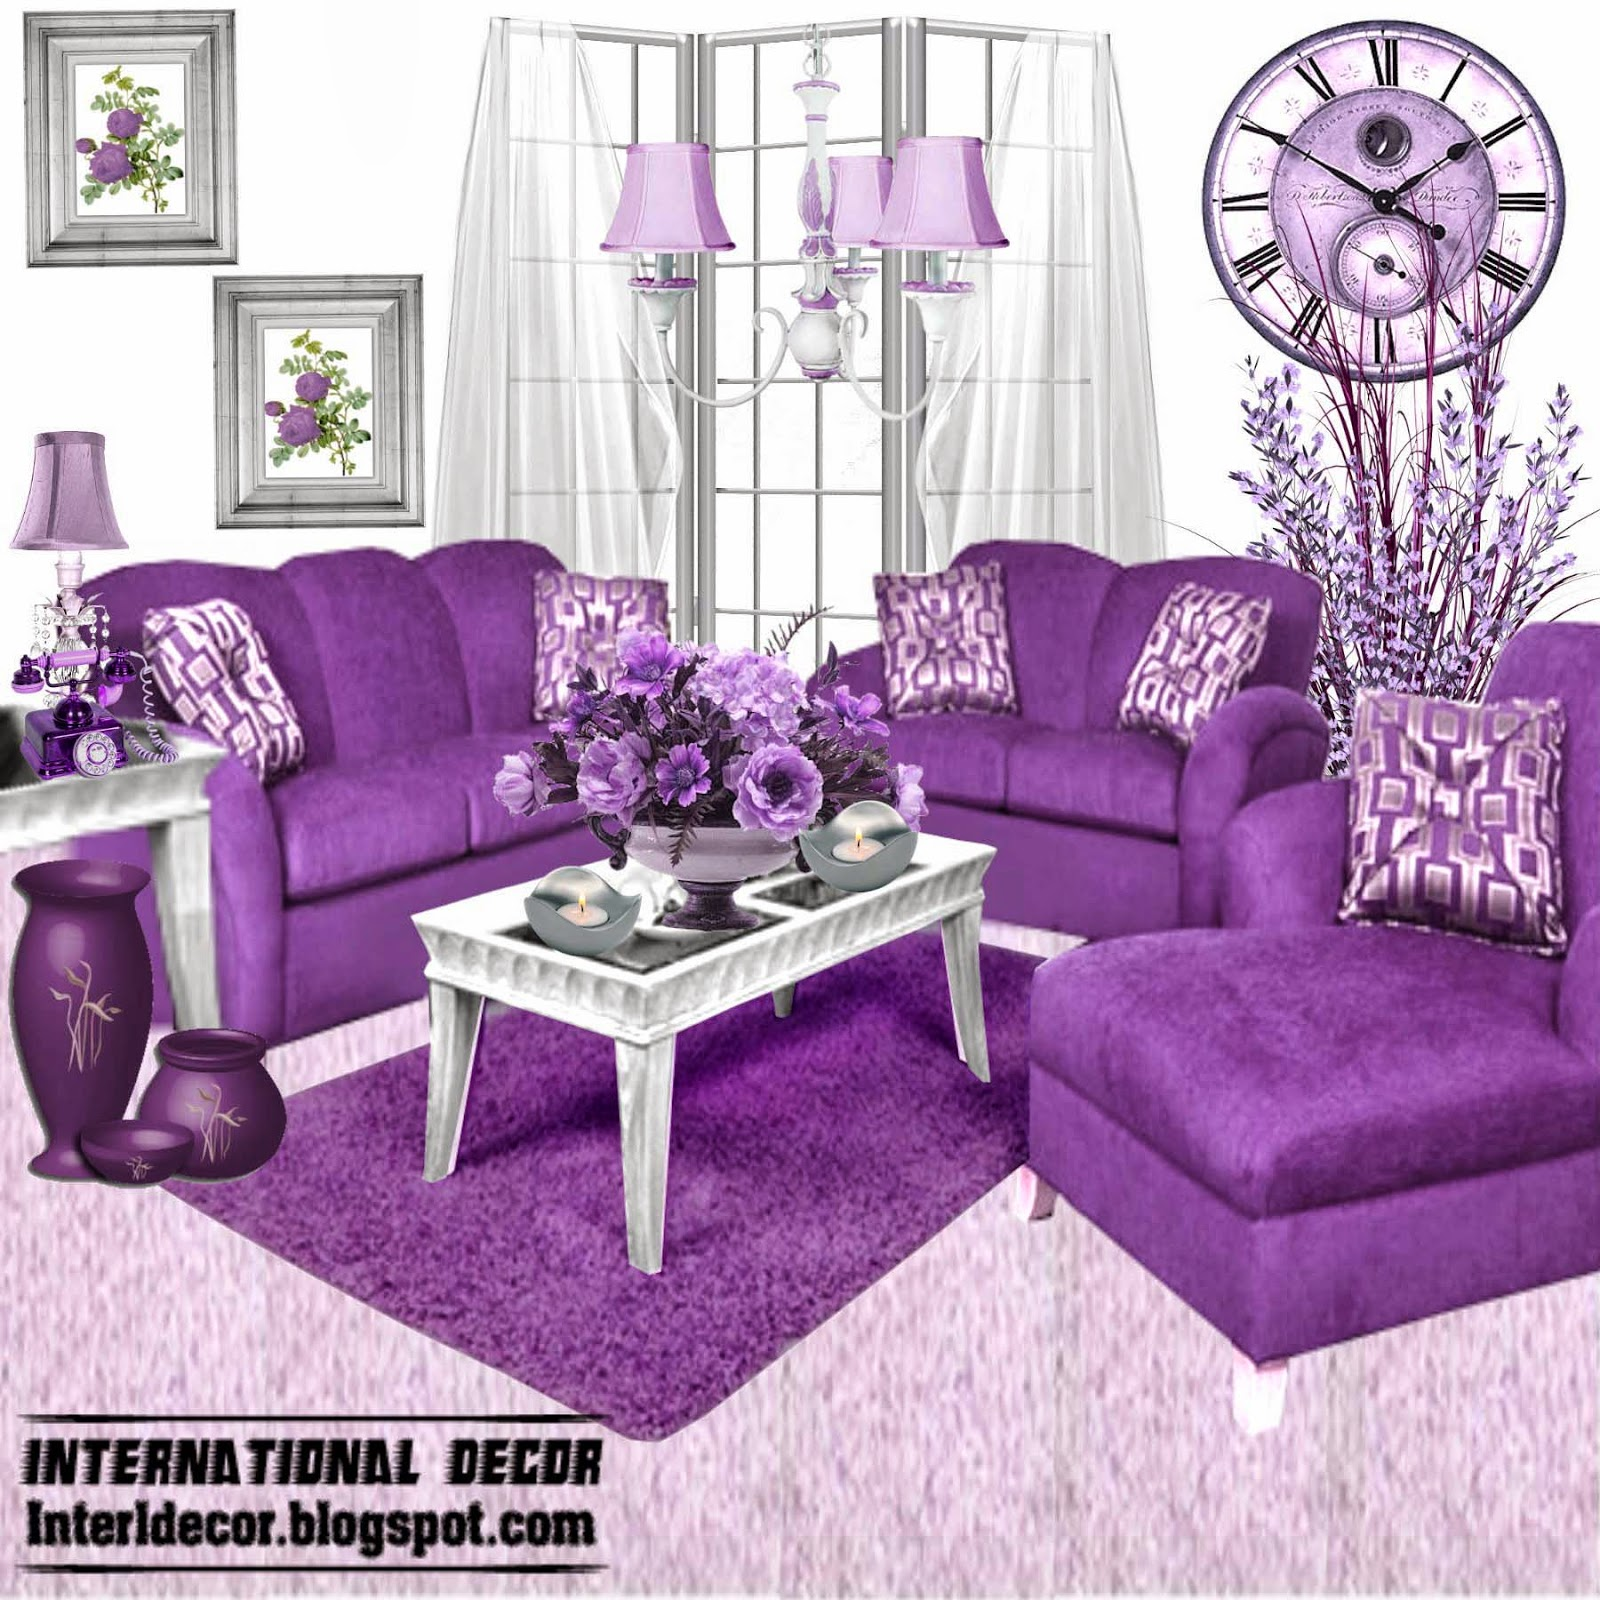 Luxury purple furniture sets sofas chairs for living room interior designs - Furniture design for living room ...